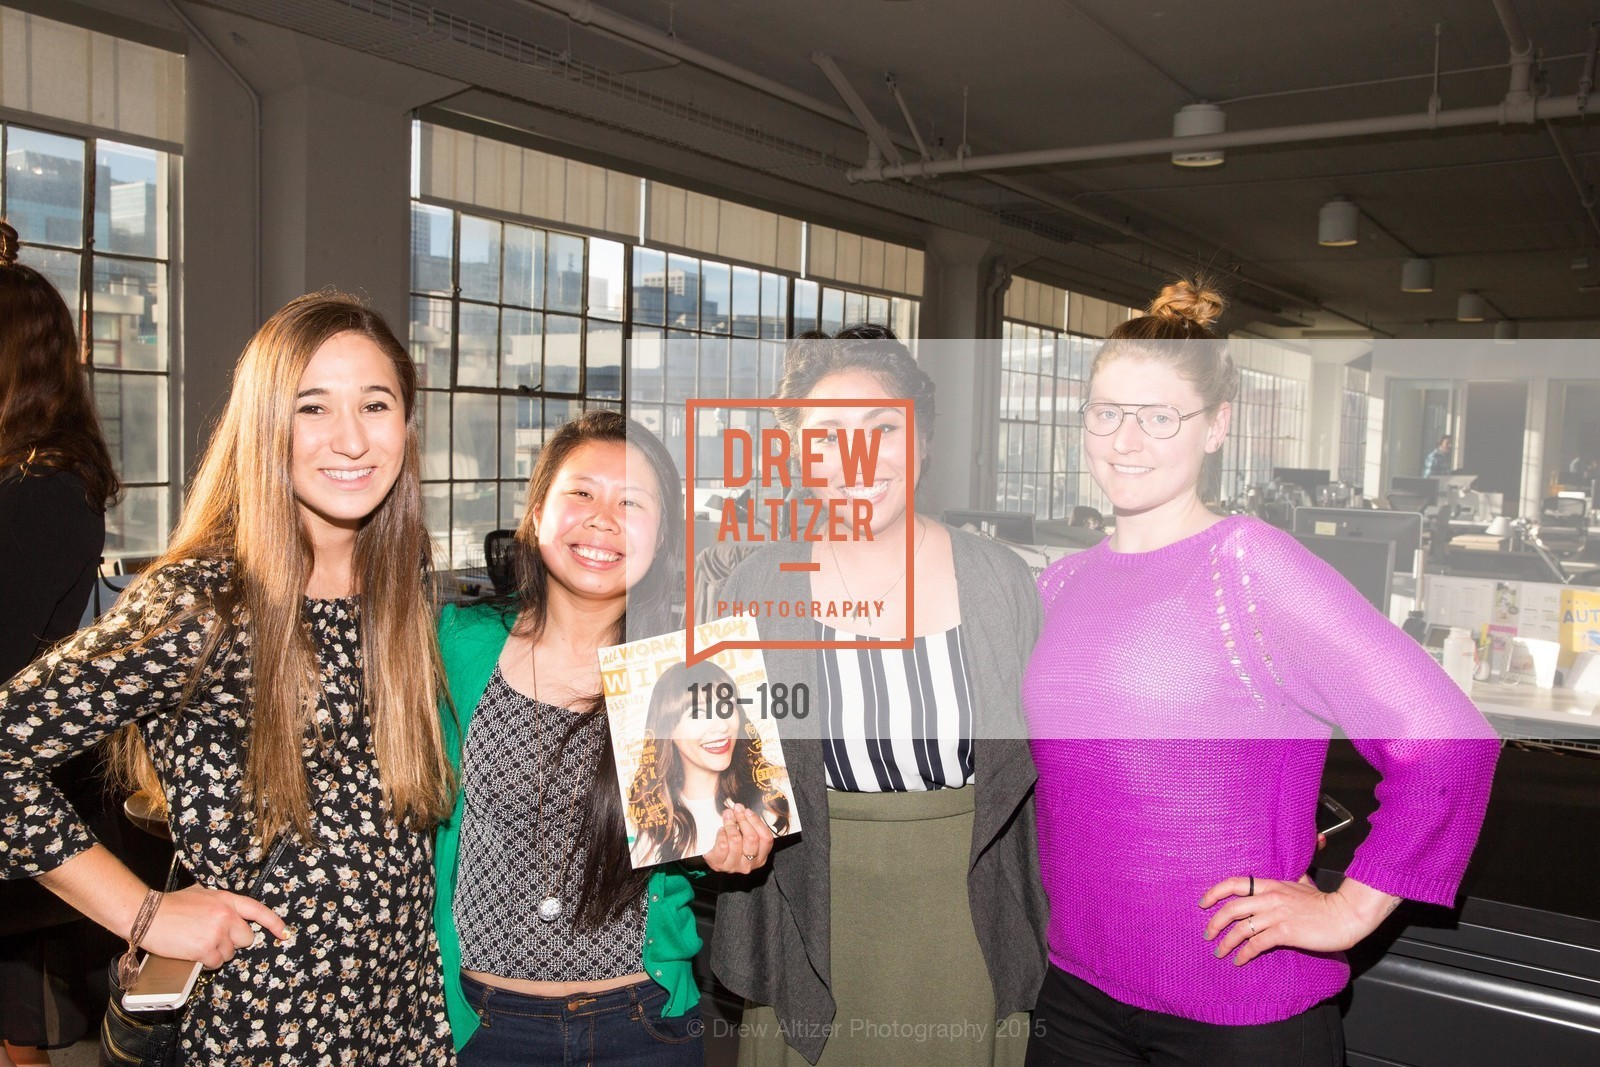 Emily Owayni, Kimberly Chen, Jamie Lam, Rebecca Hill, Wired Magazine July Cover Release Celebration at New Wired Office, Wired Magazine Offices. 520 3rd Street, June 24th, 2015,Drew Altizer, Drew Altizer Photography, full-service agency, private events, San Francisco photographer, photographer california